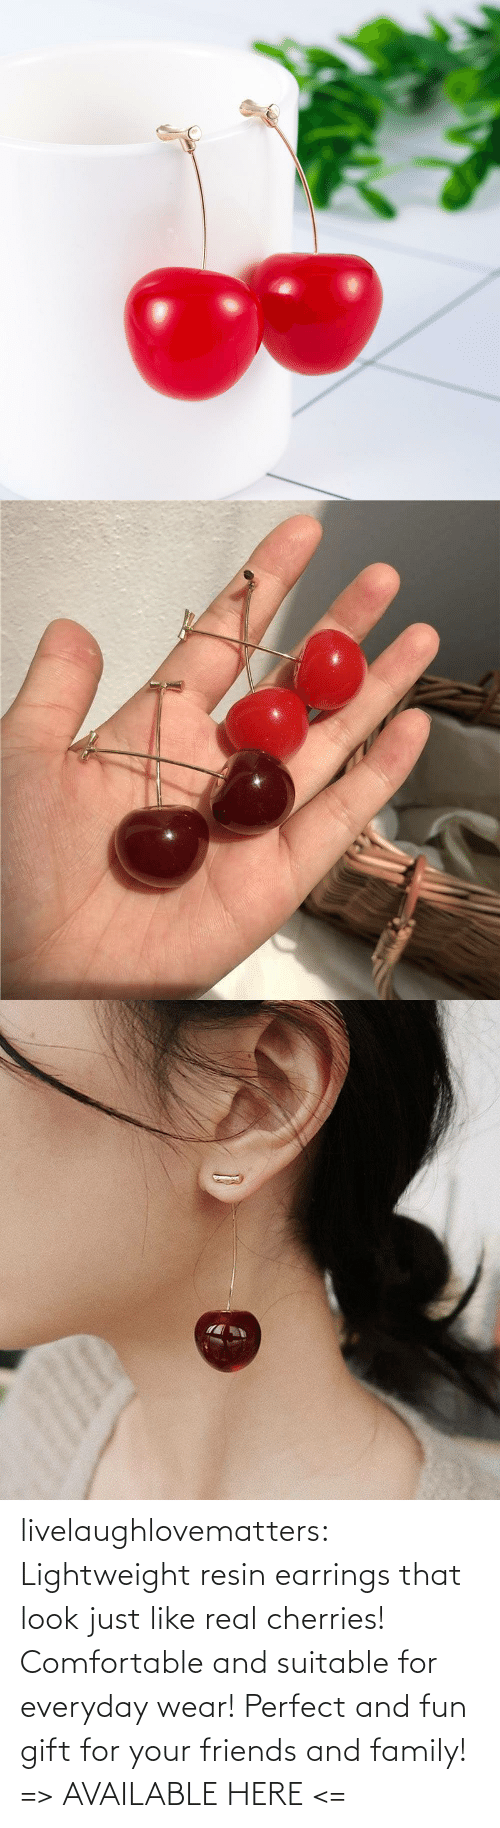 realistic: livelaughlovematters: Lightweight resin earrings that look just like real cherries! Comfortable and suitable for everyday wear! Perfect and fun gift for your friends and family! => AVAILABLE HERE <=